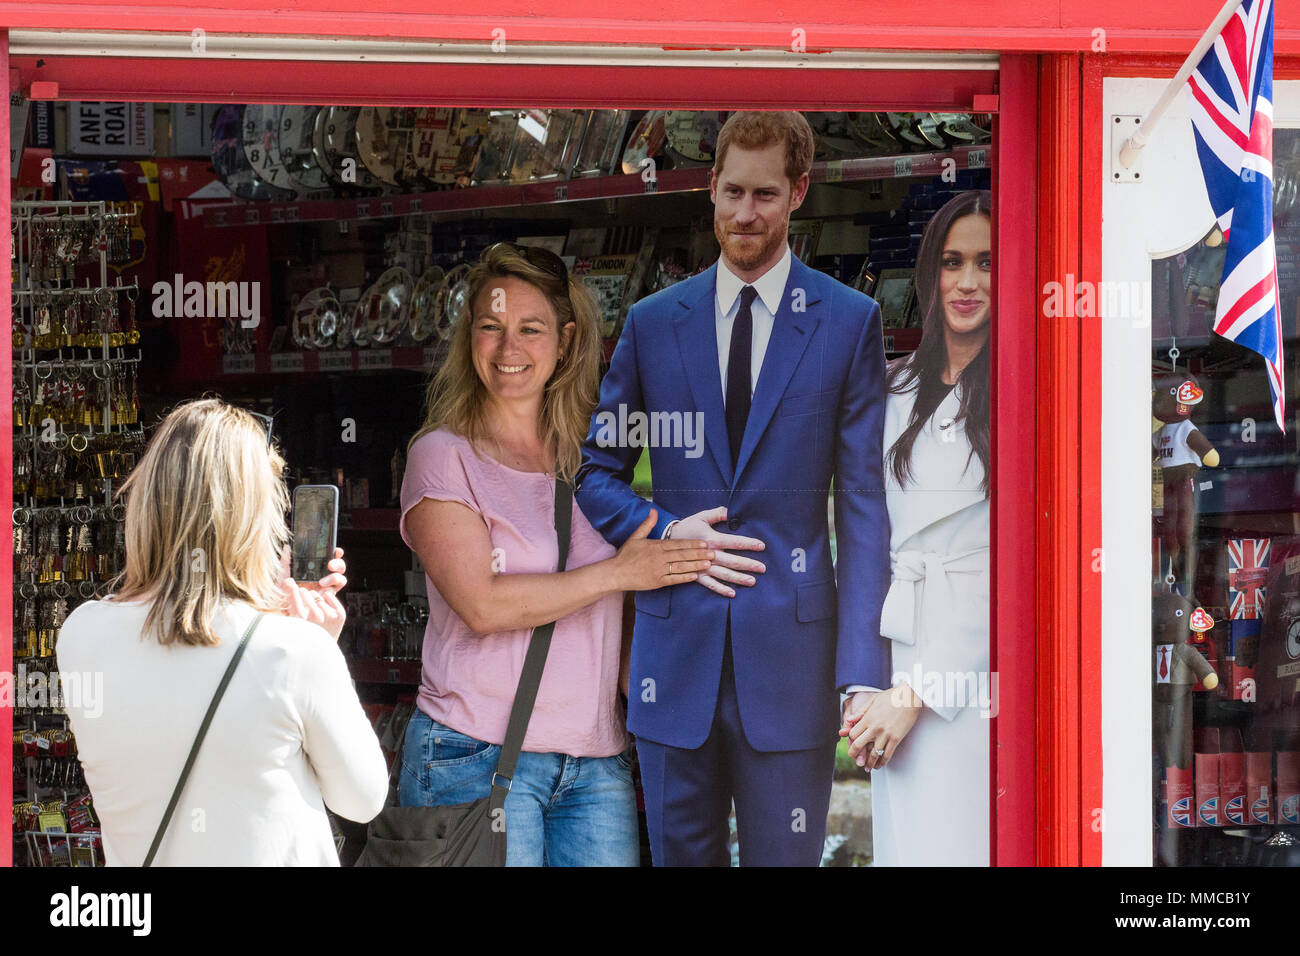 Windsor, UK. 10th May, 2018. Tourists take pictures with cardboard cutouts of Prince Harry and Meghan Markle in advance of the royal wedding at Windsor Castle on 19th May. Credit: Mark Kerrison/Alamy Live News - Stock Image